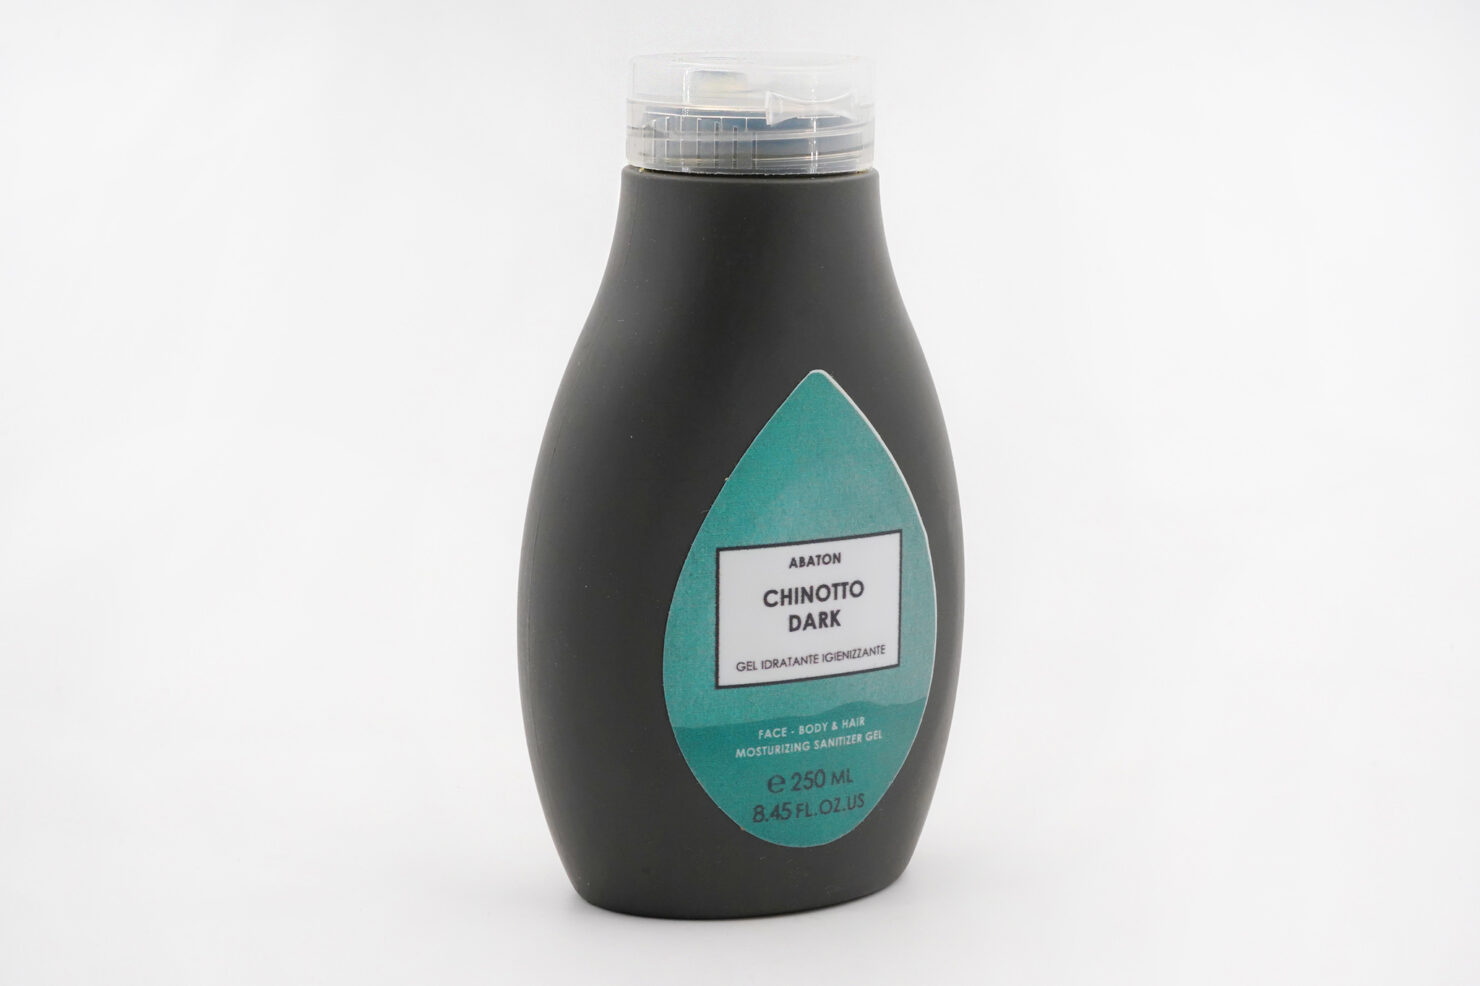 CHINOTTO DARK GEL SANITIZER100 ML - ABATON